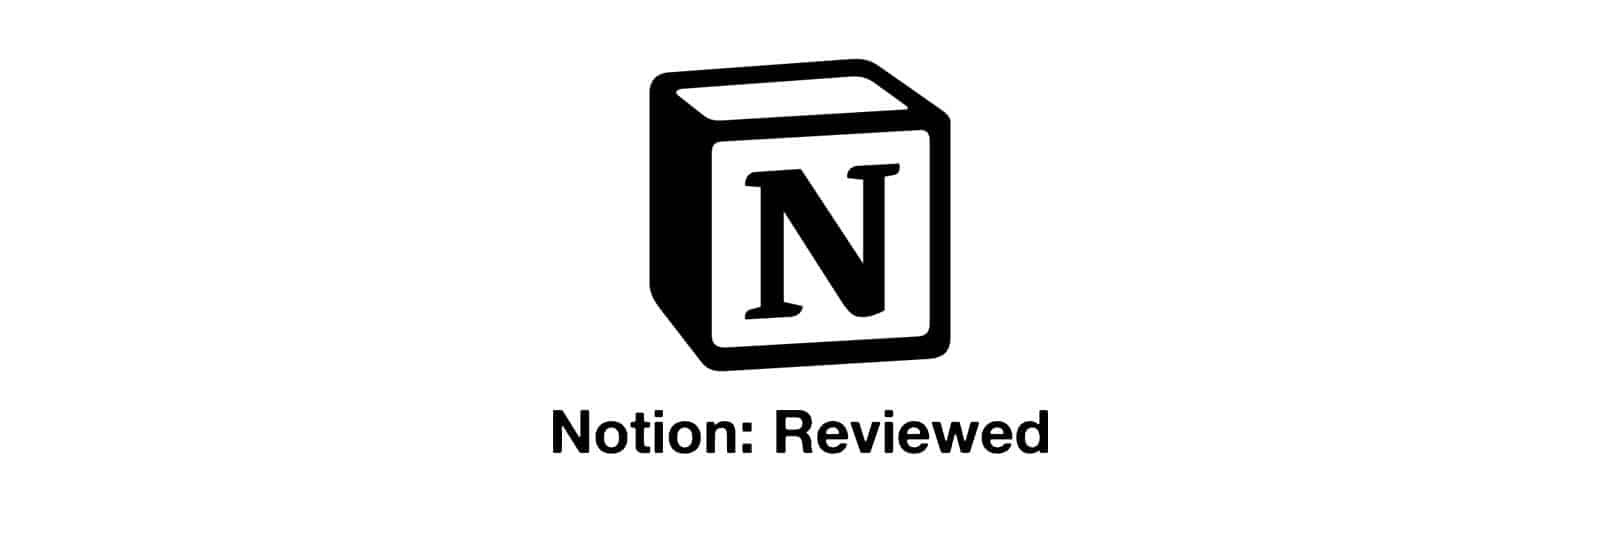 notion-reviewed